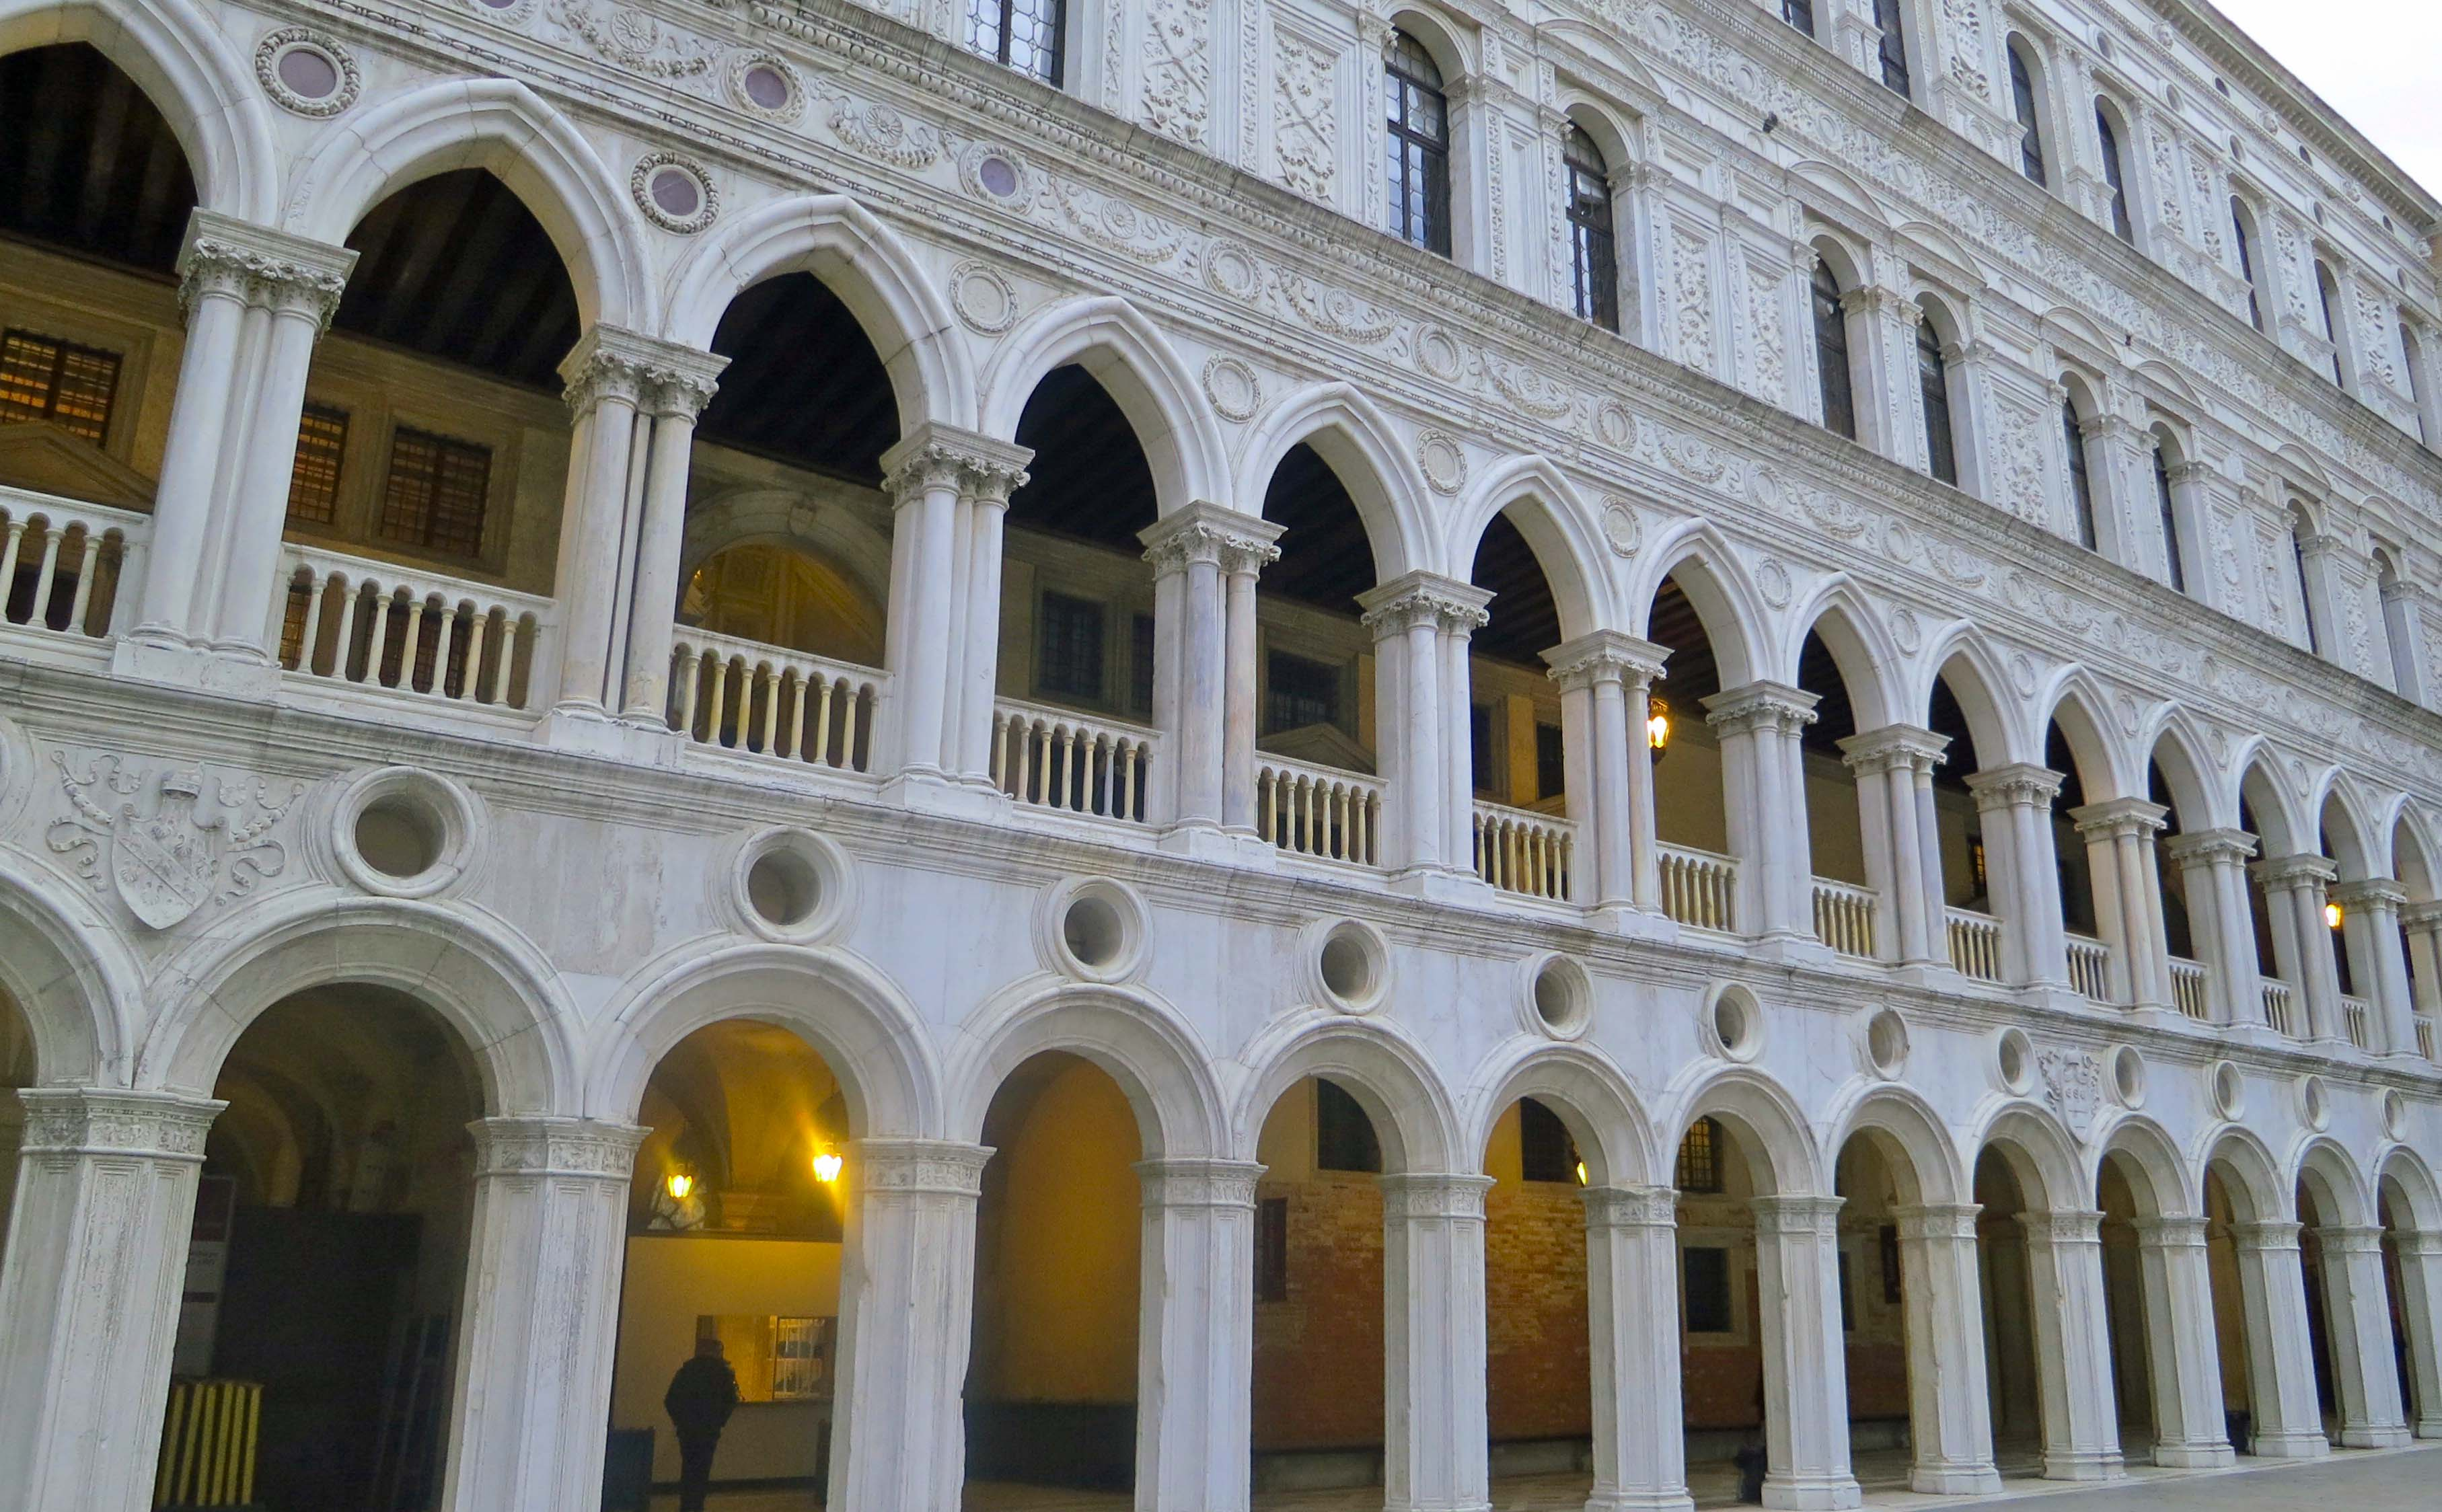 A view of the inner courtyard of the Doge's Palace in Venice.